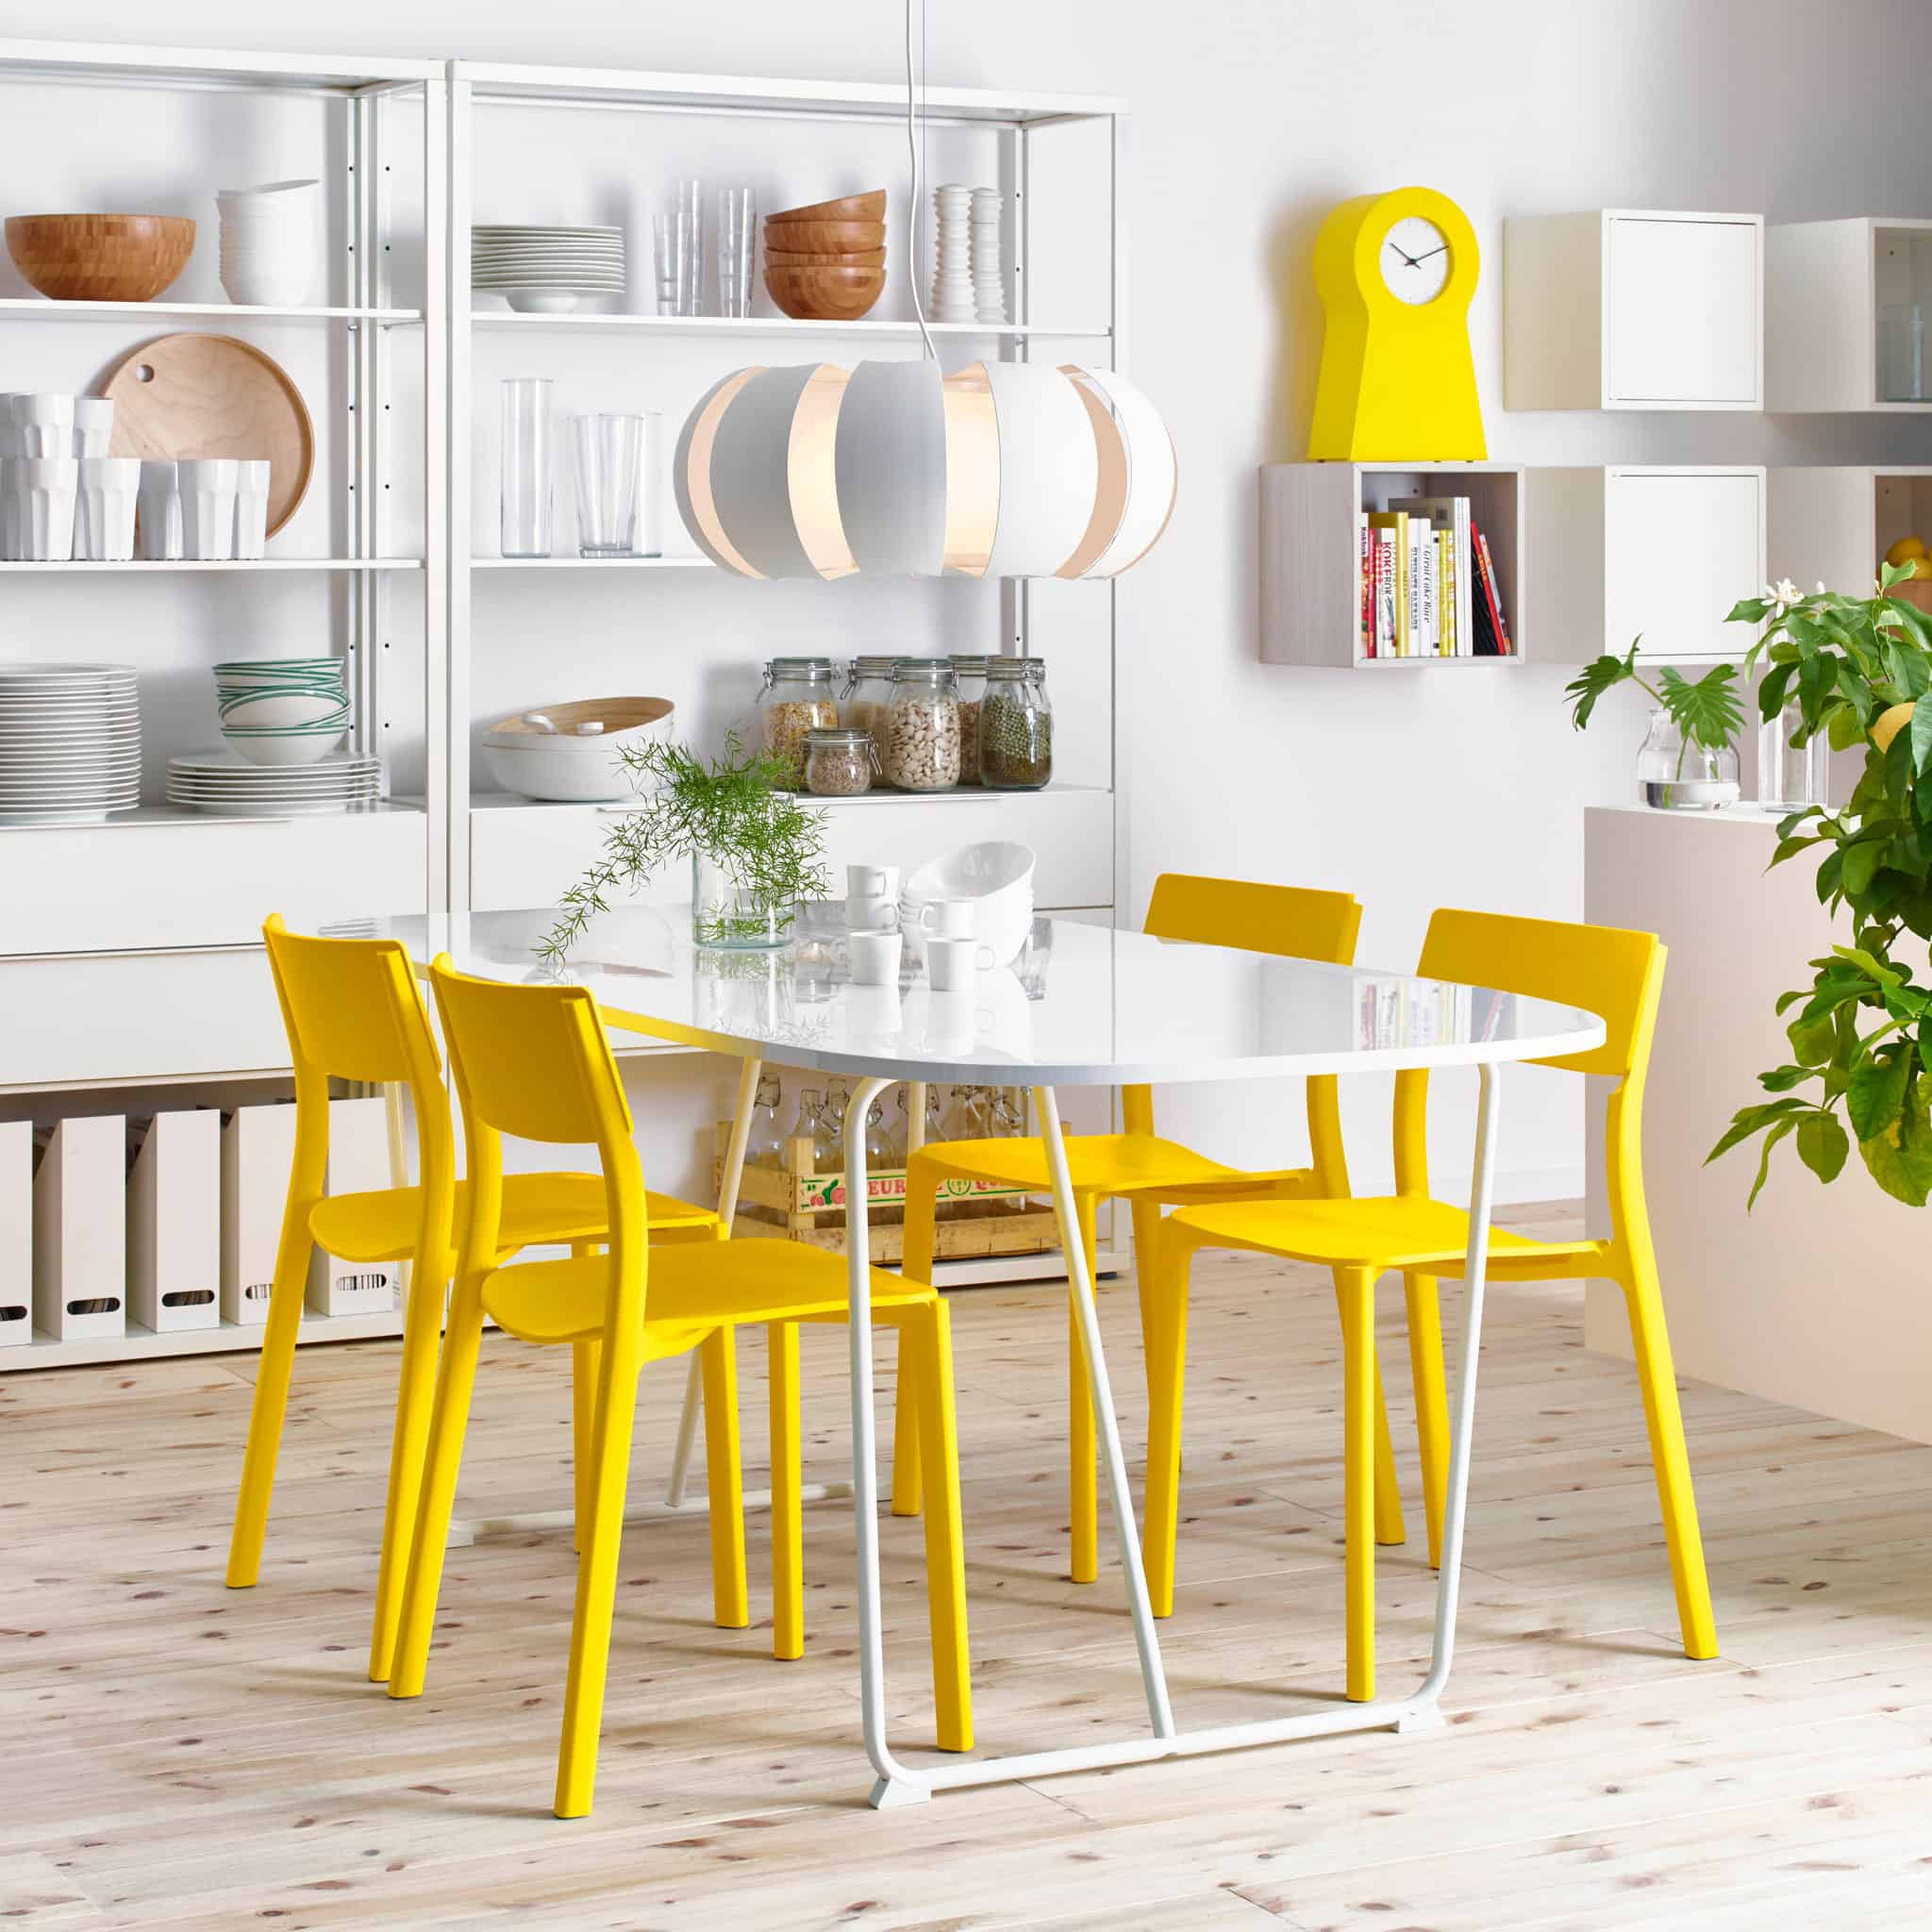 Many kitchen areas are large enough to have a small dining table with a few chairs.